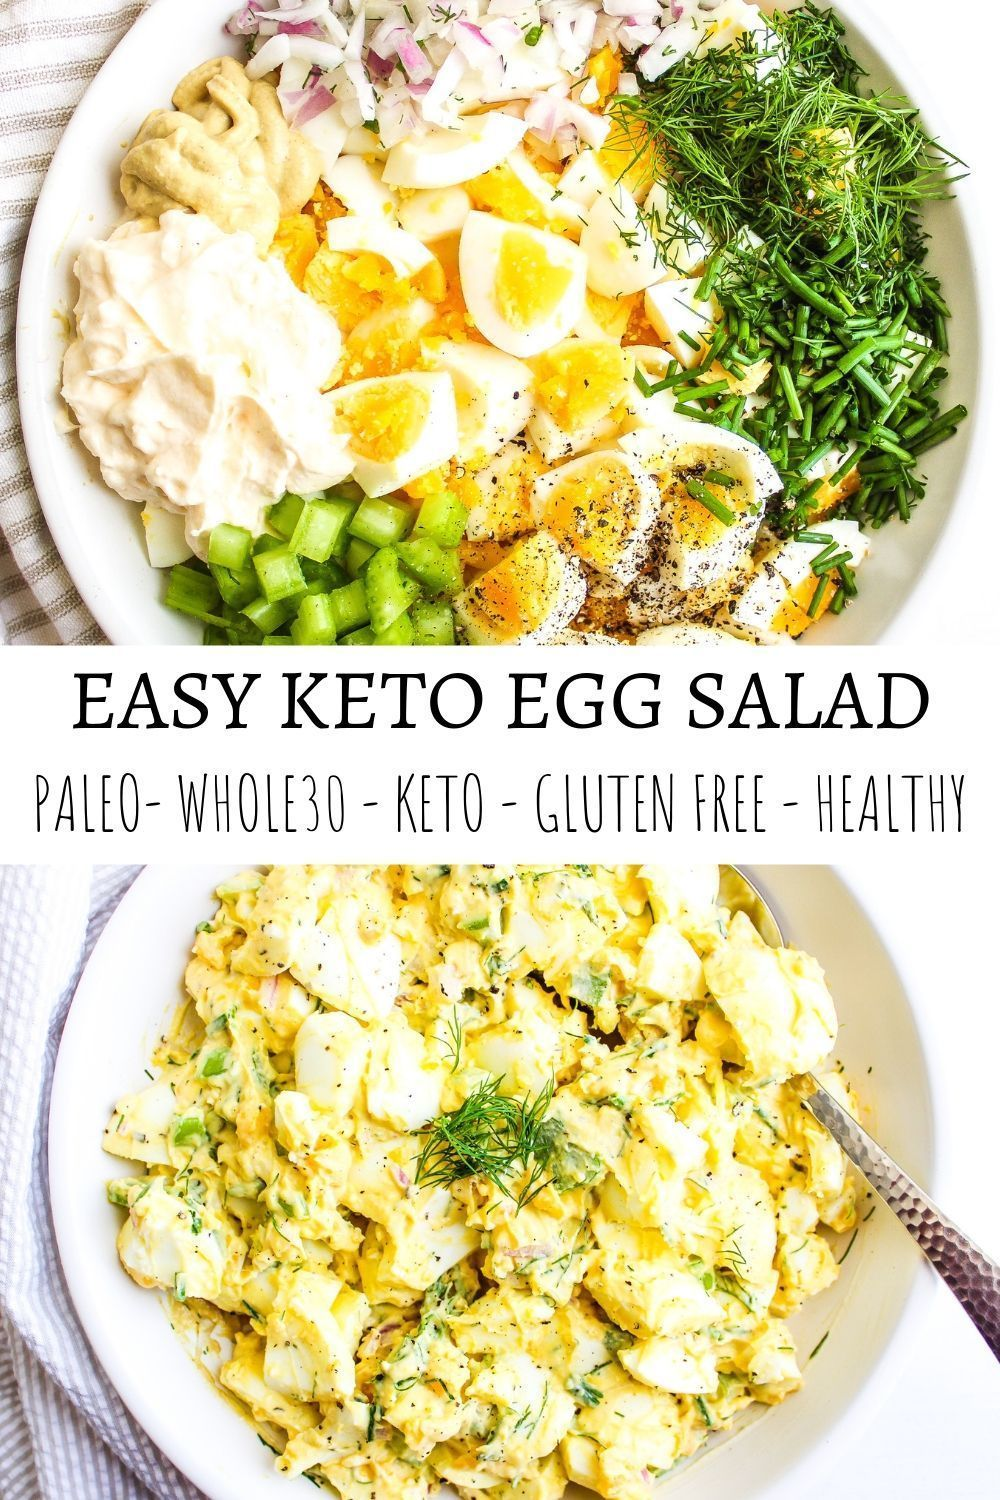 Easy Keto Egg Salad -